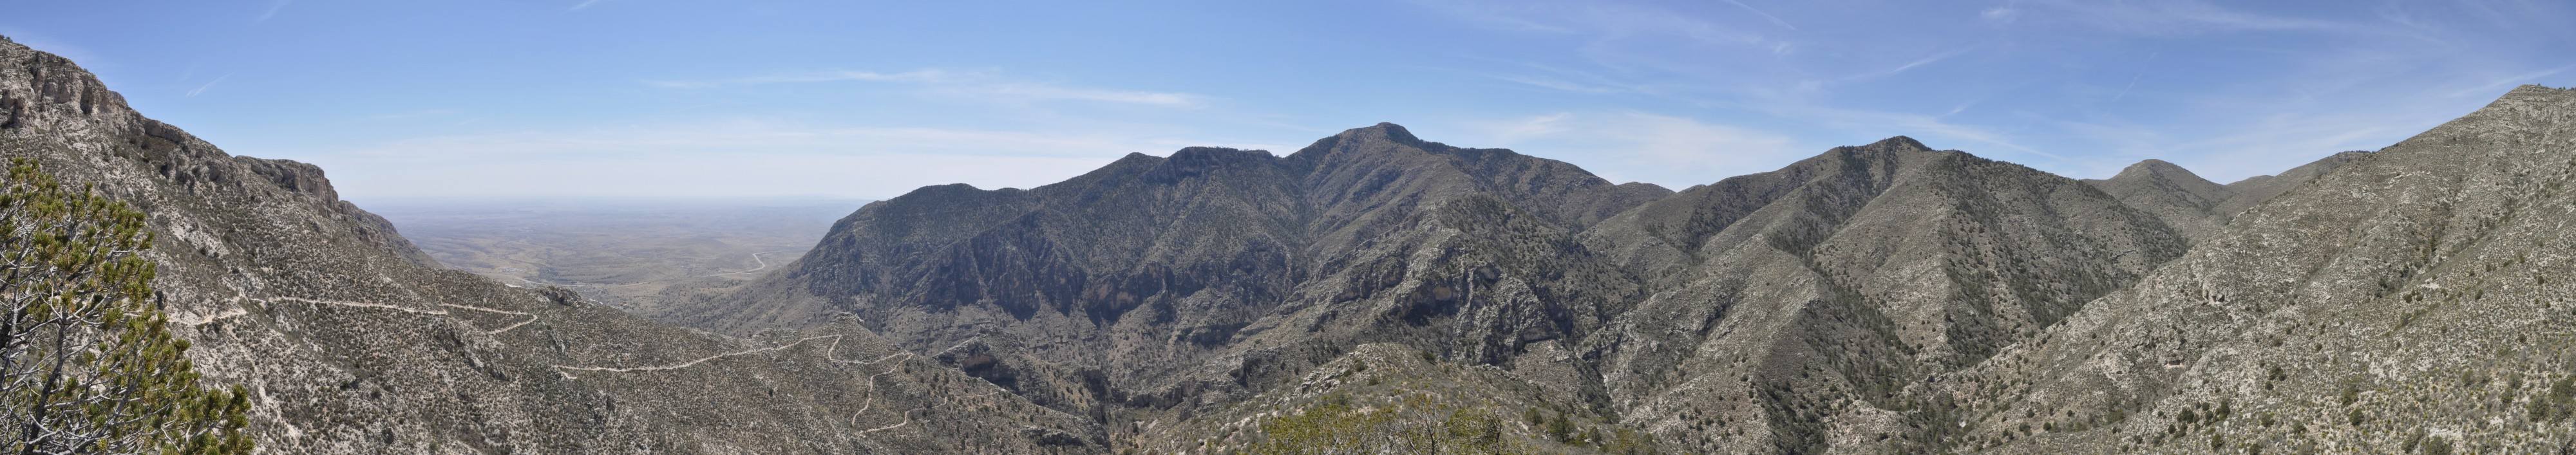 Guadalupe Mountains March 2014